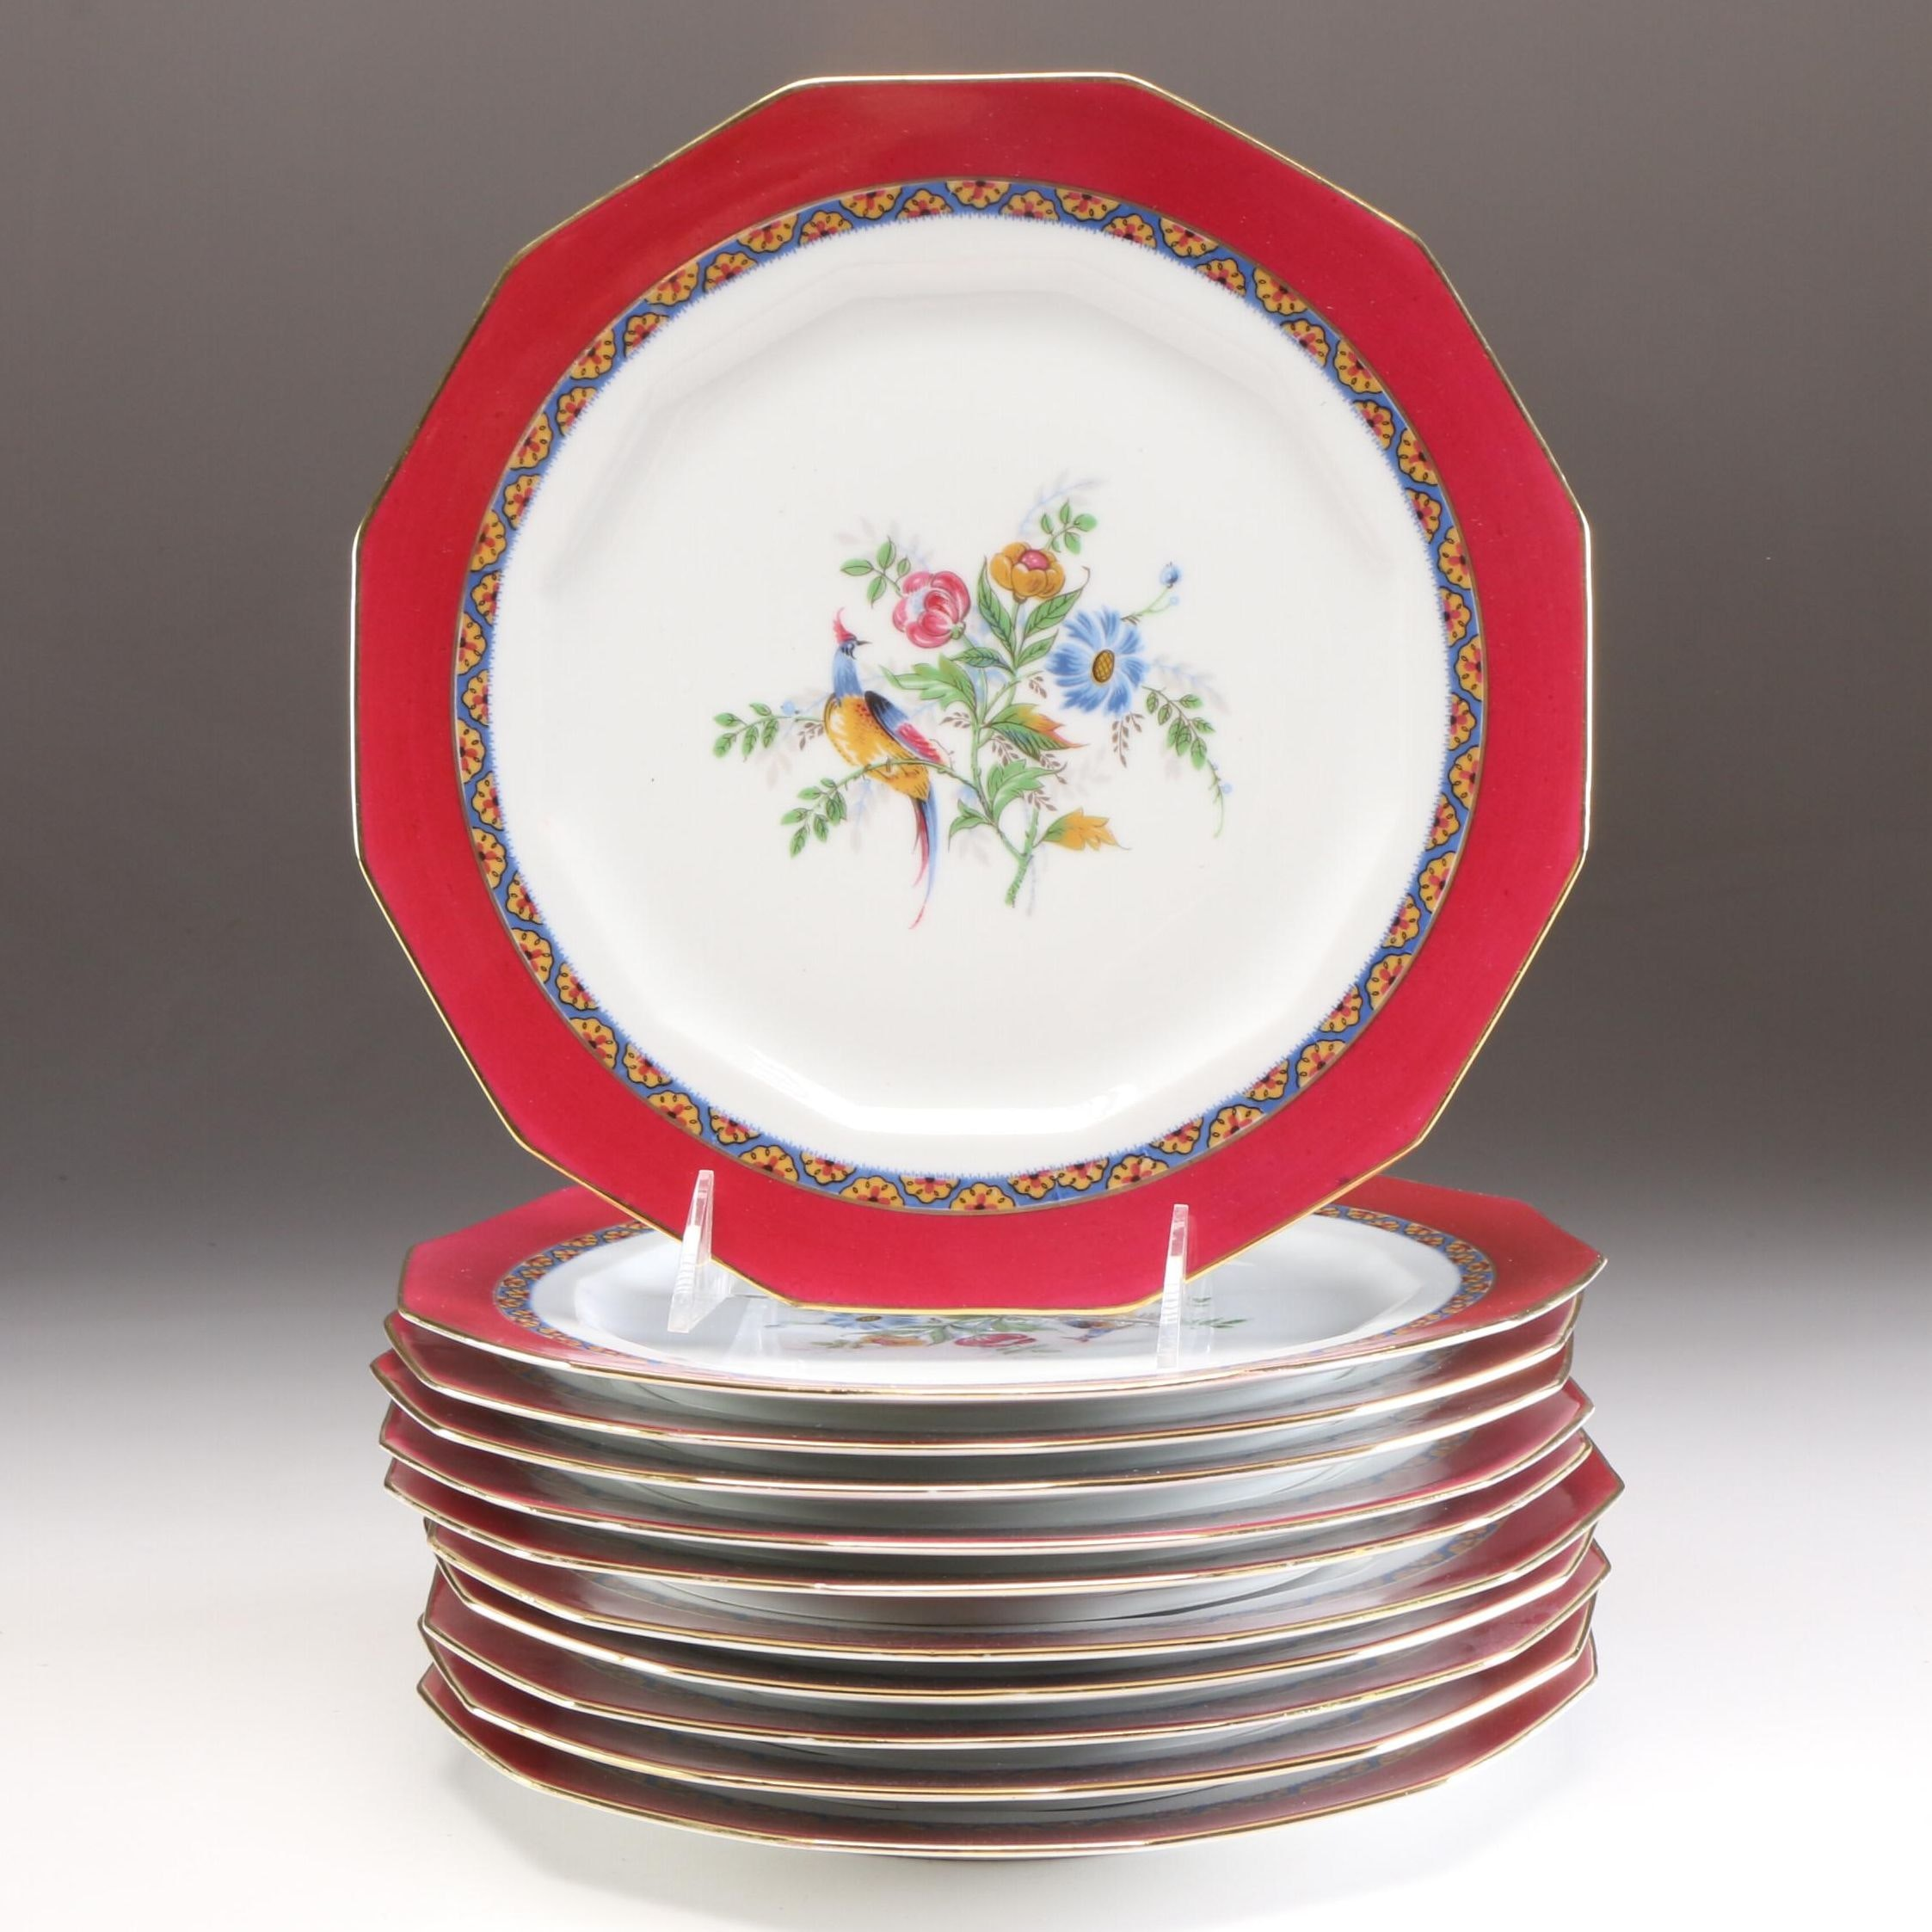 Charles Ahrenfeldt Limoges Porcelain Dinnerware, Early to Mid 20th Century